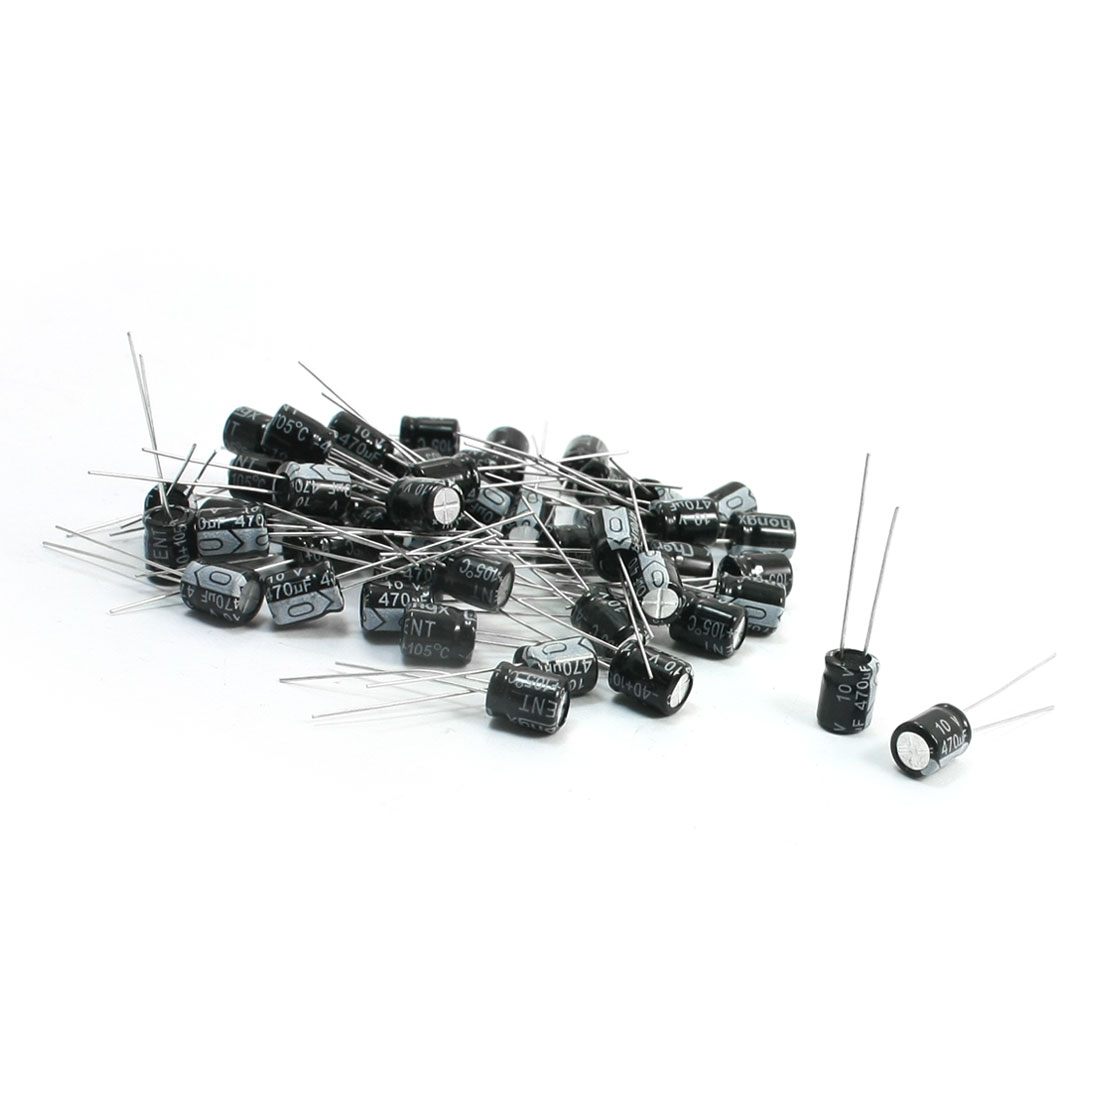 6mm x 8mm Through Hole Aluminum Electrolytic Capacitor 10V 470uF 50Pcs